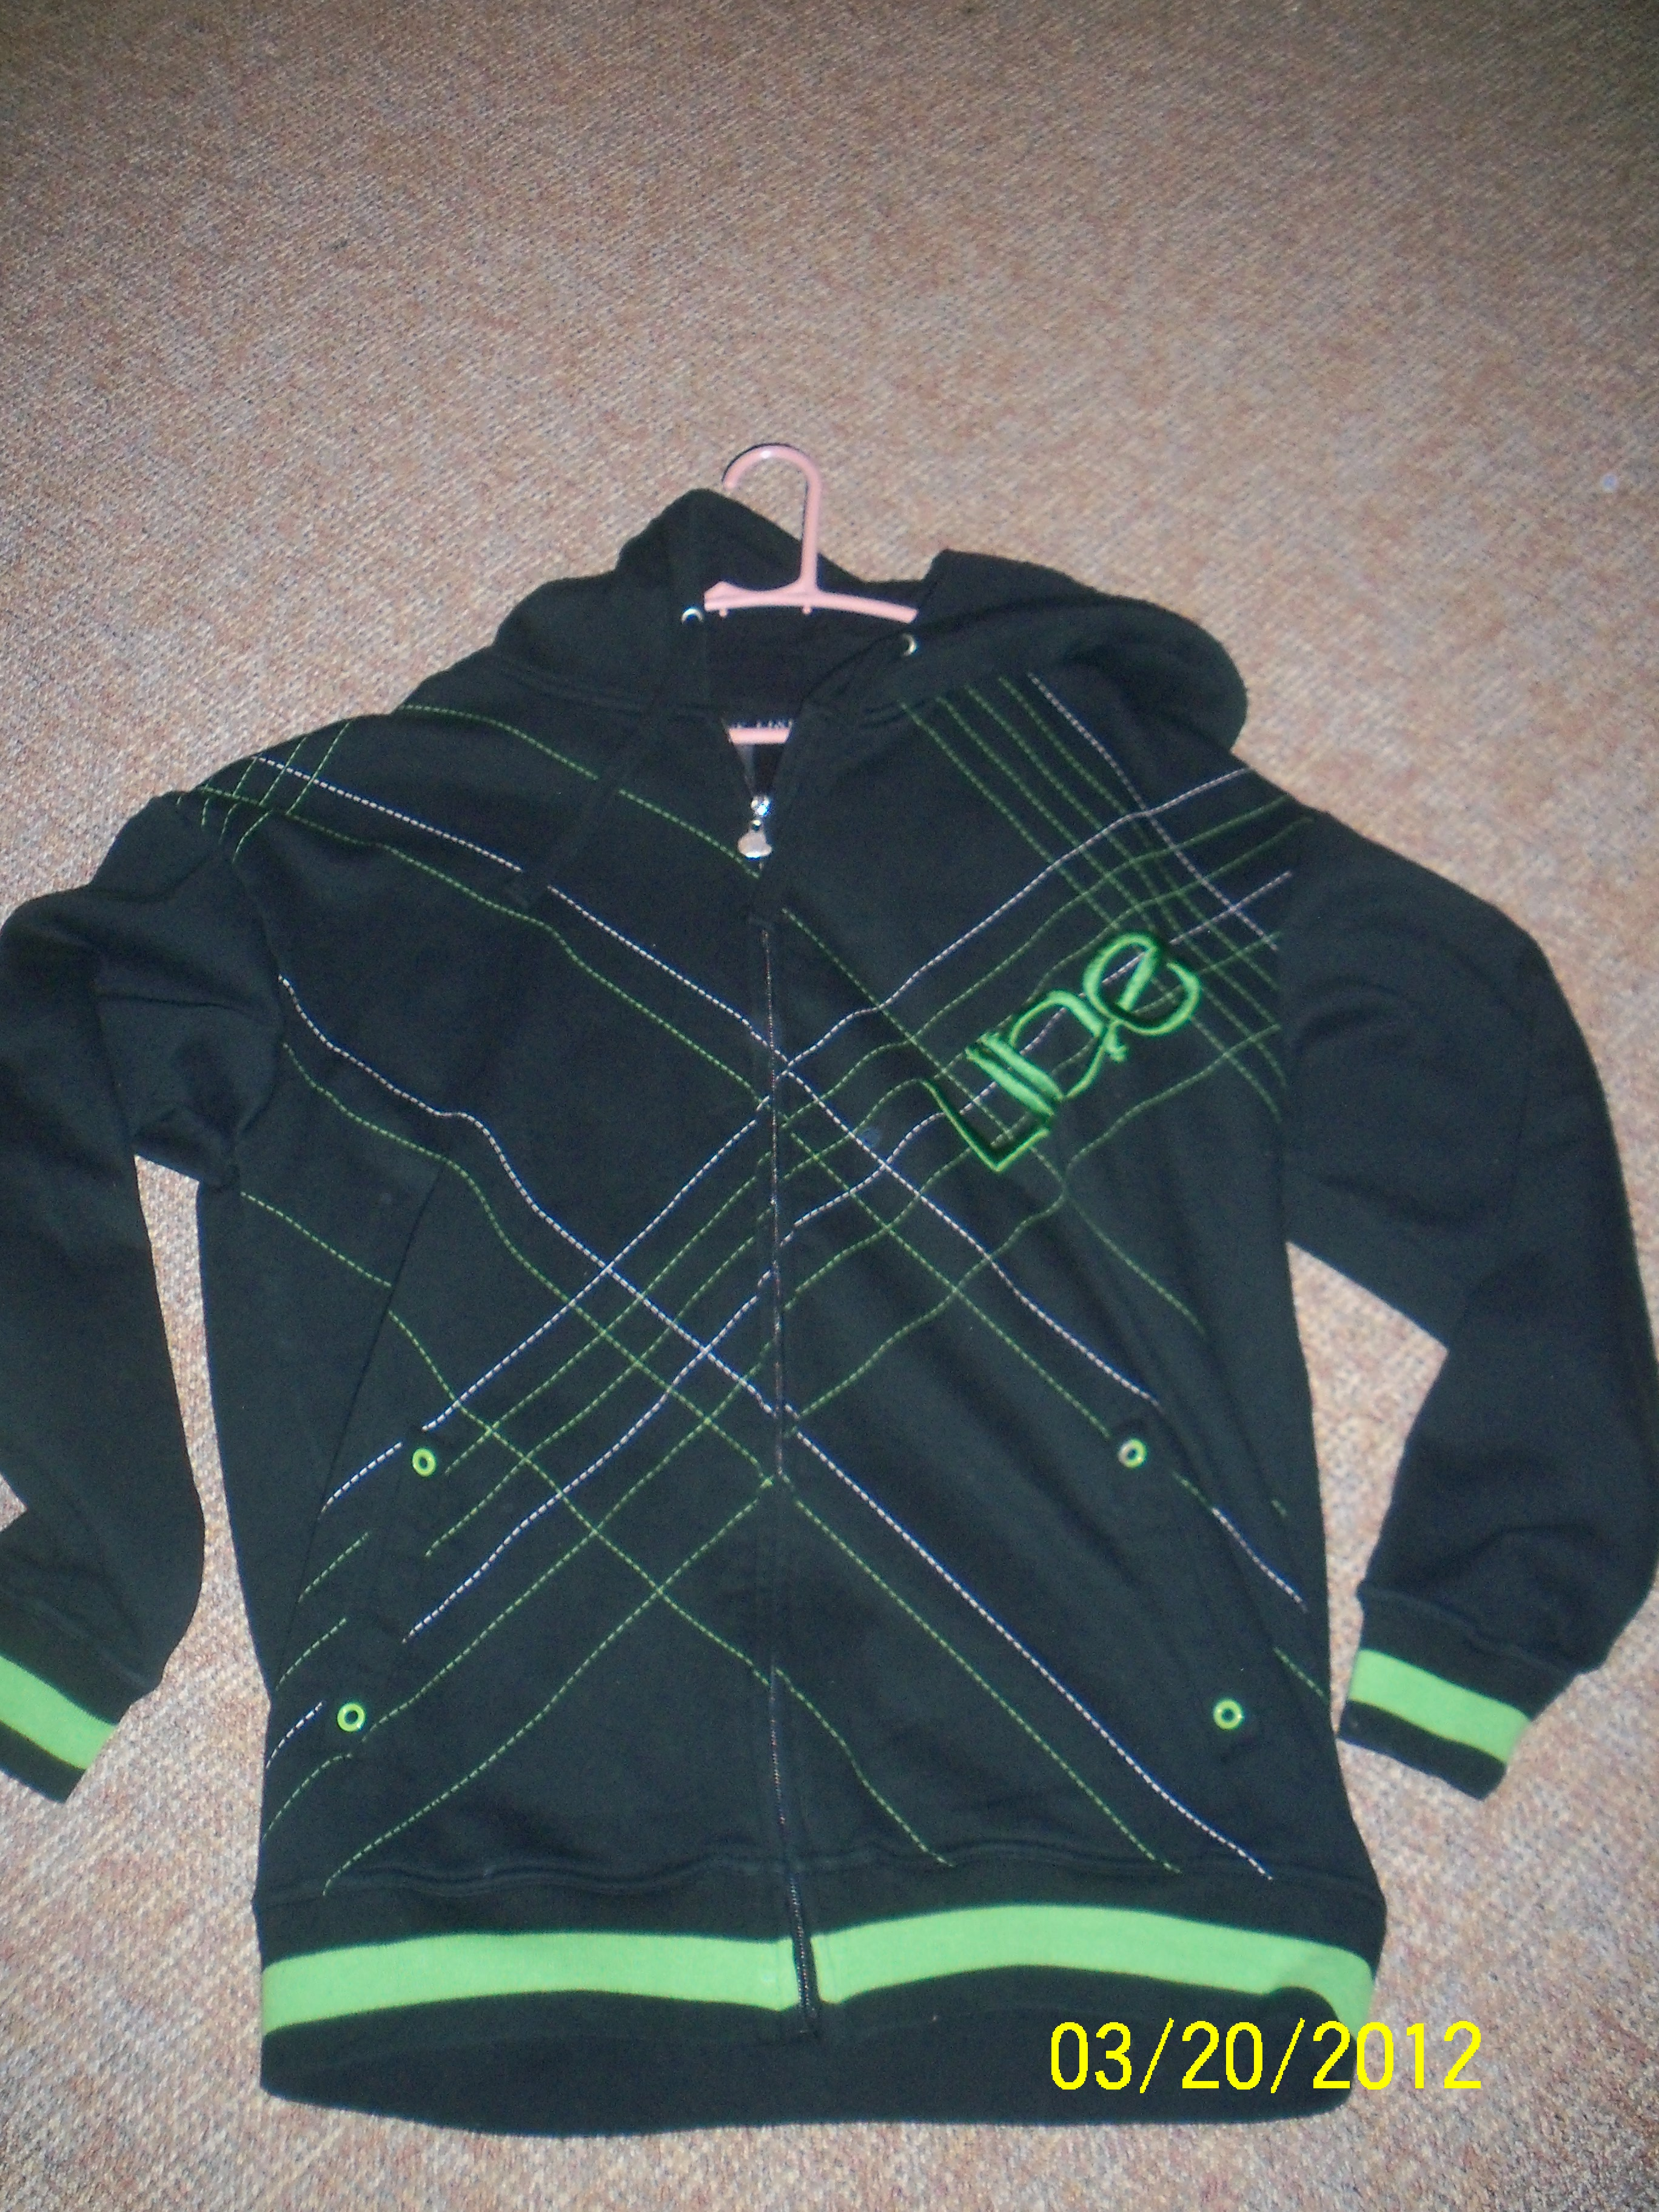 line foundation hoodie for sale LARGE